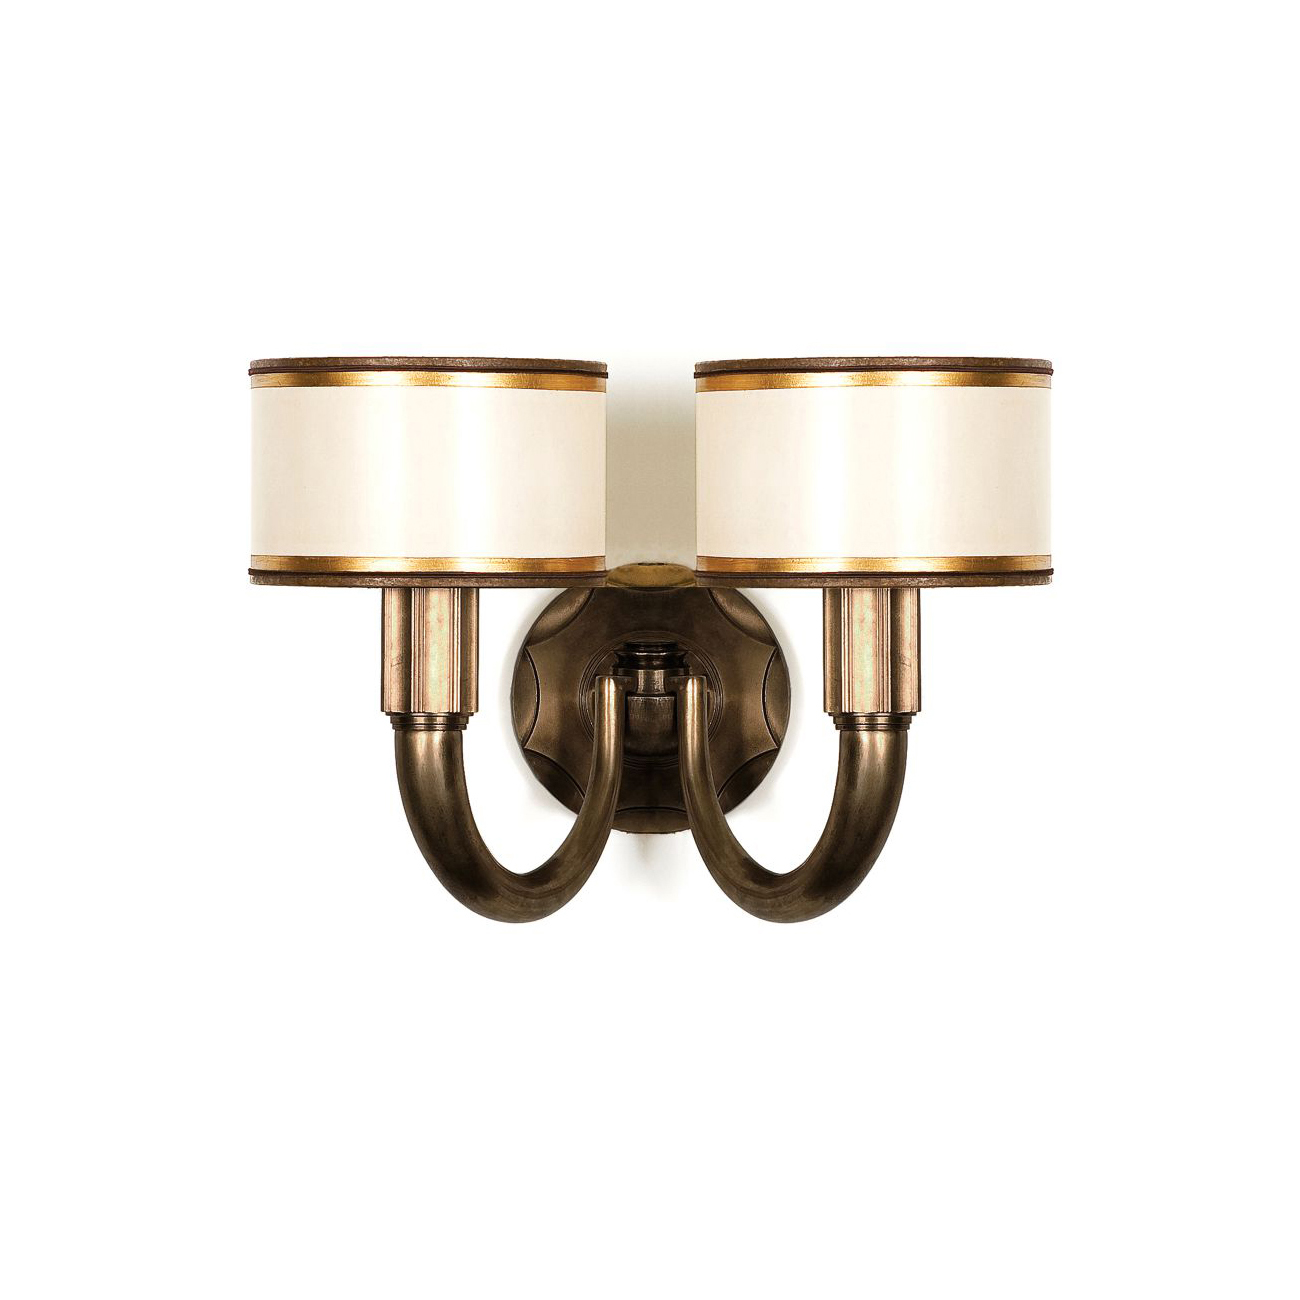 Classico Sconce by Jean De Merry